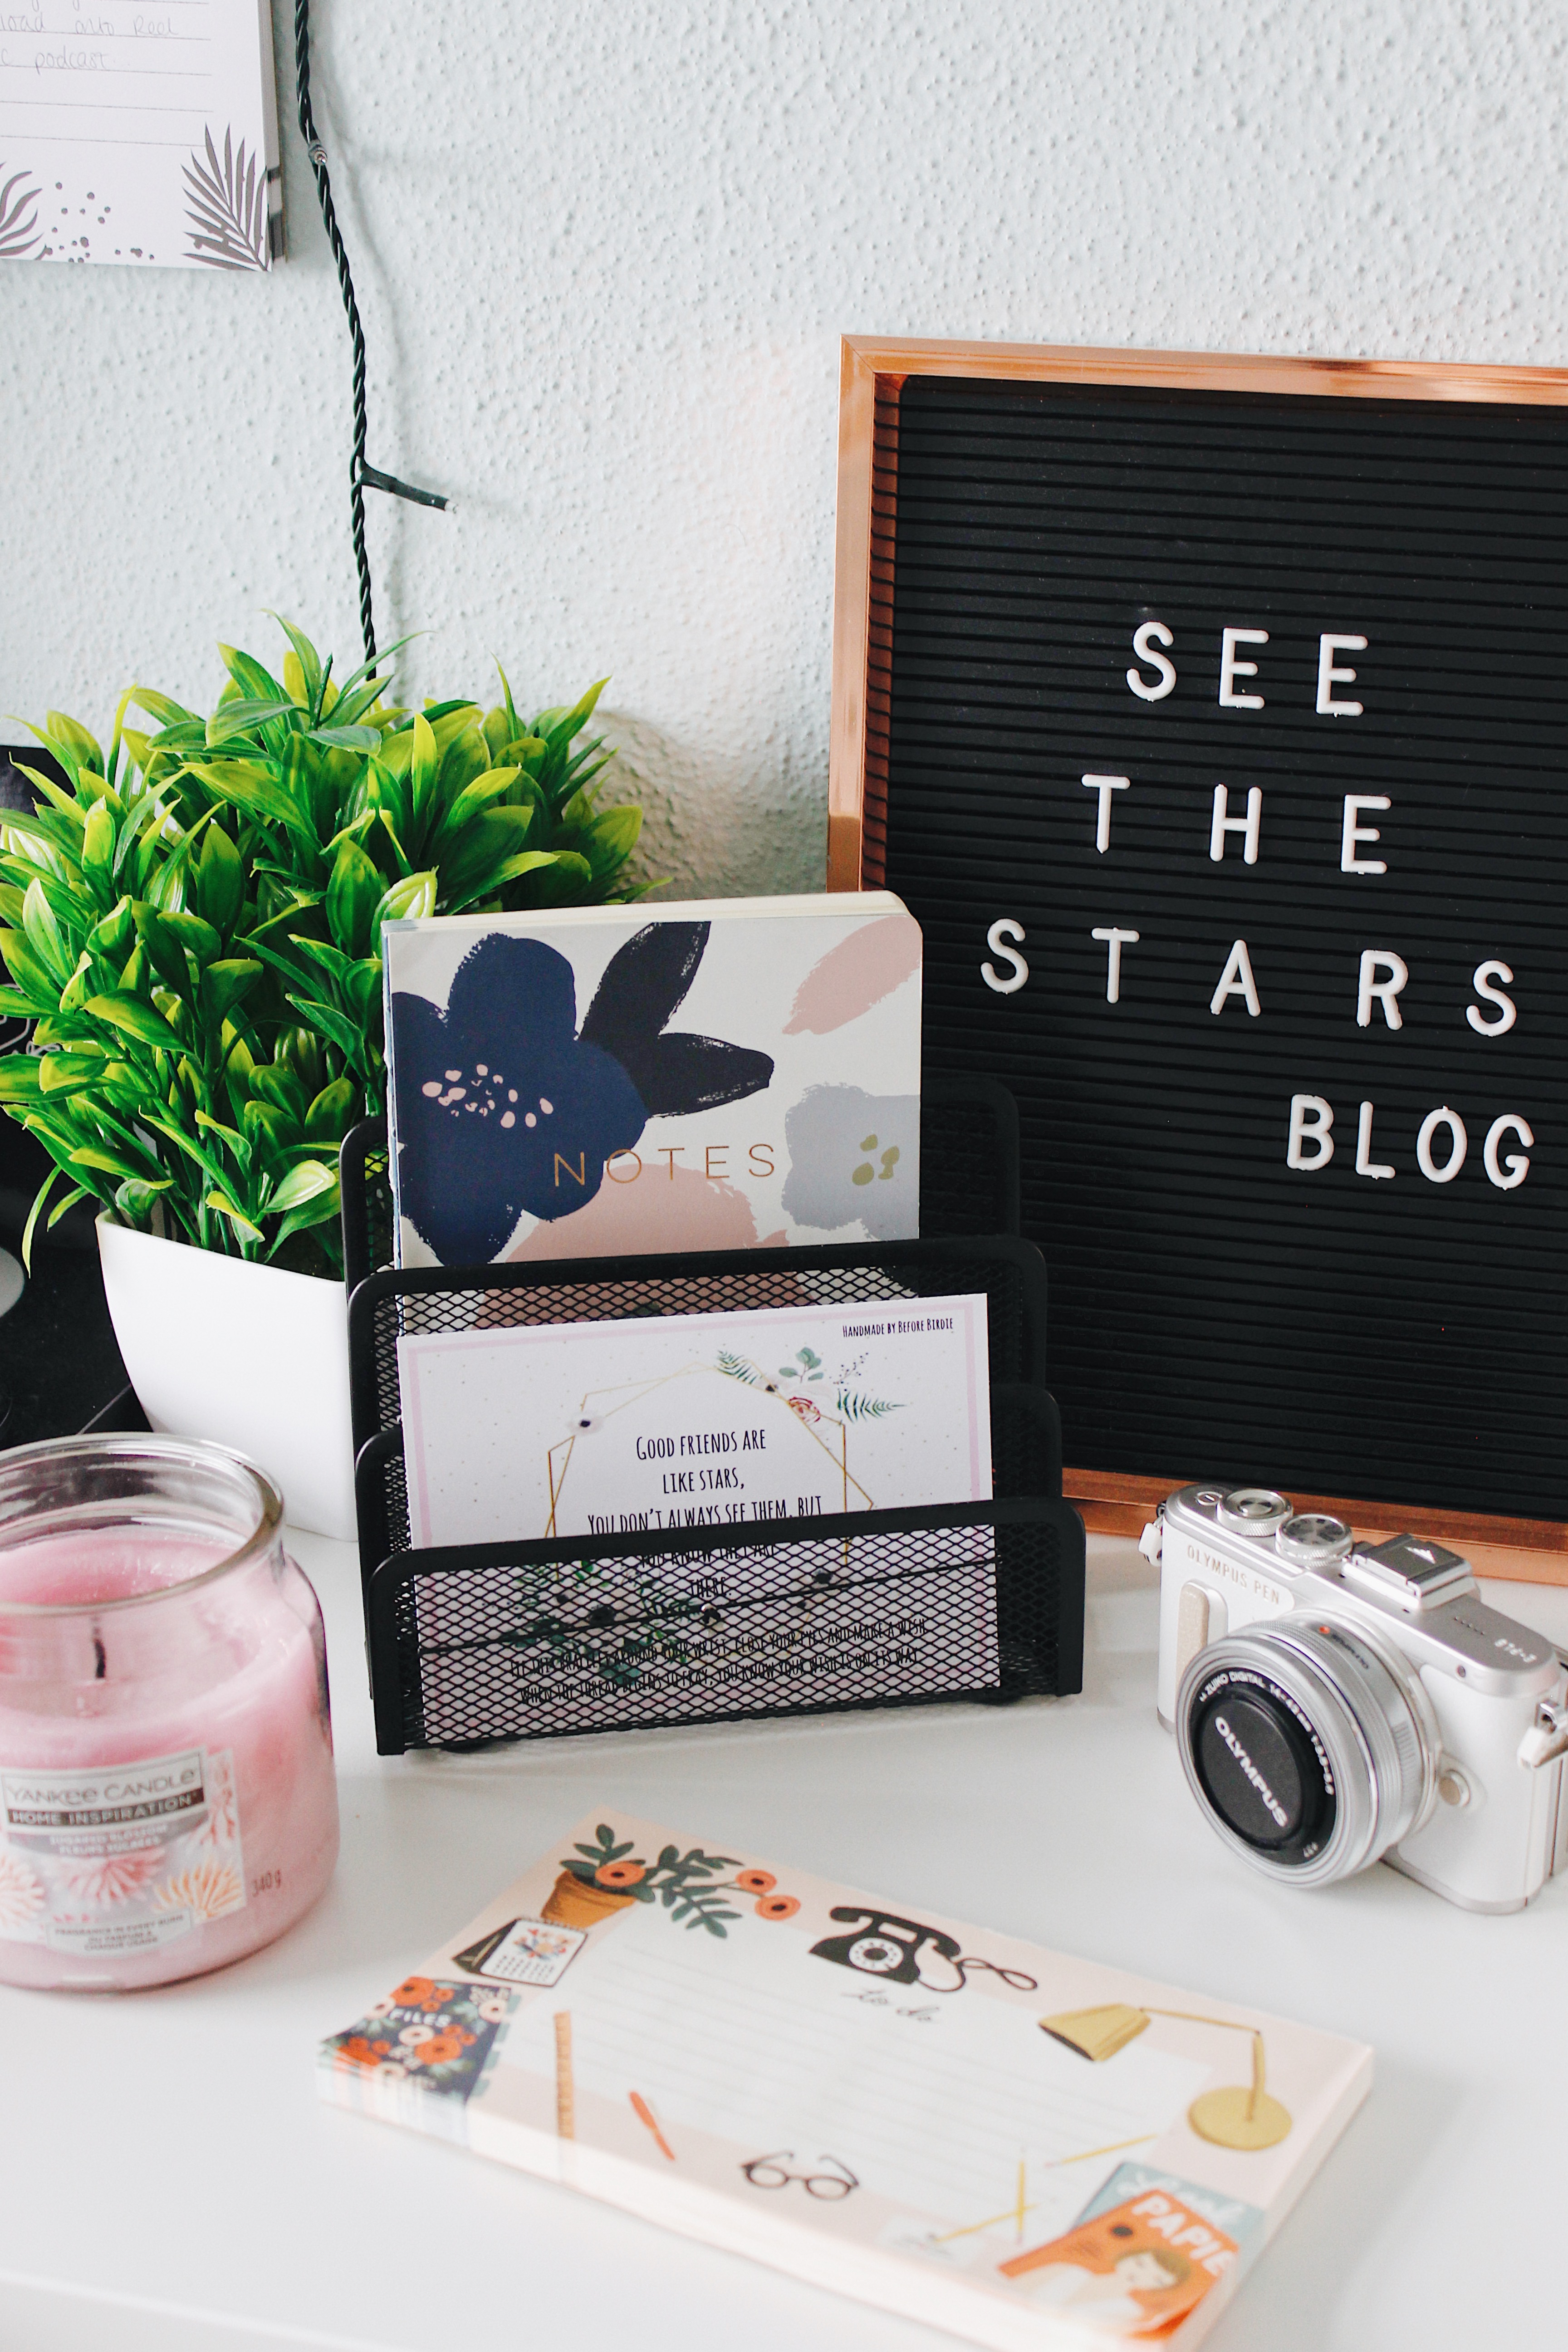 See The Stars - Office Space Makeup | blogger room tour